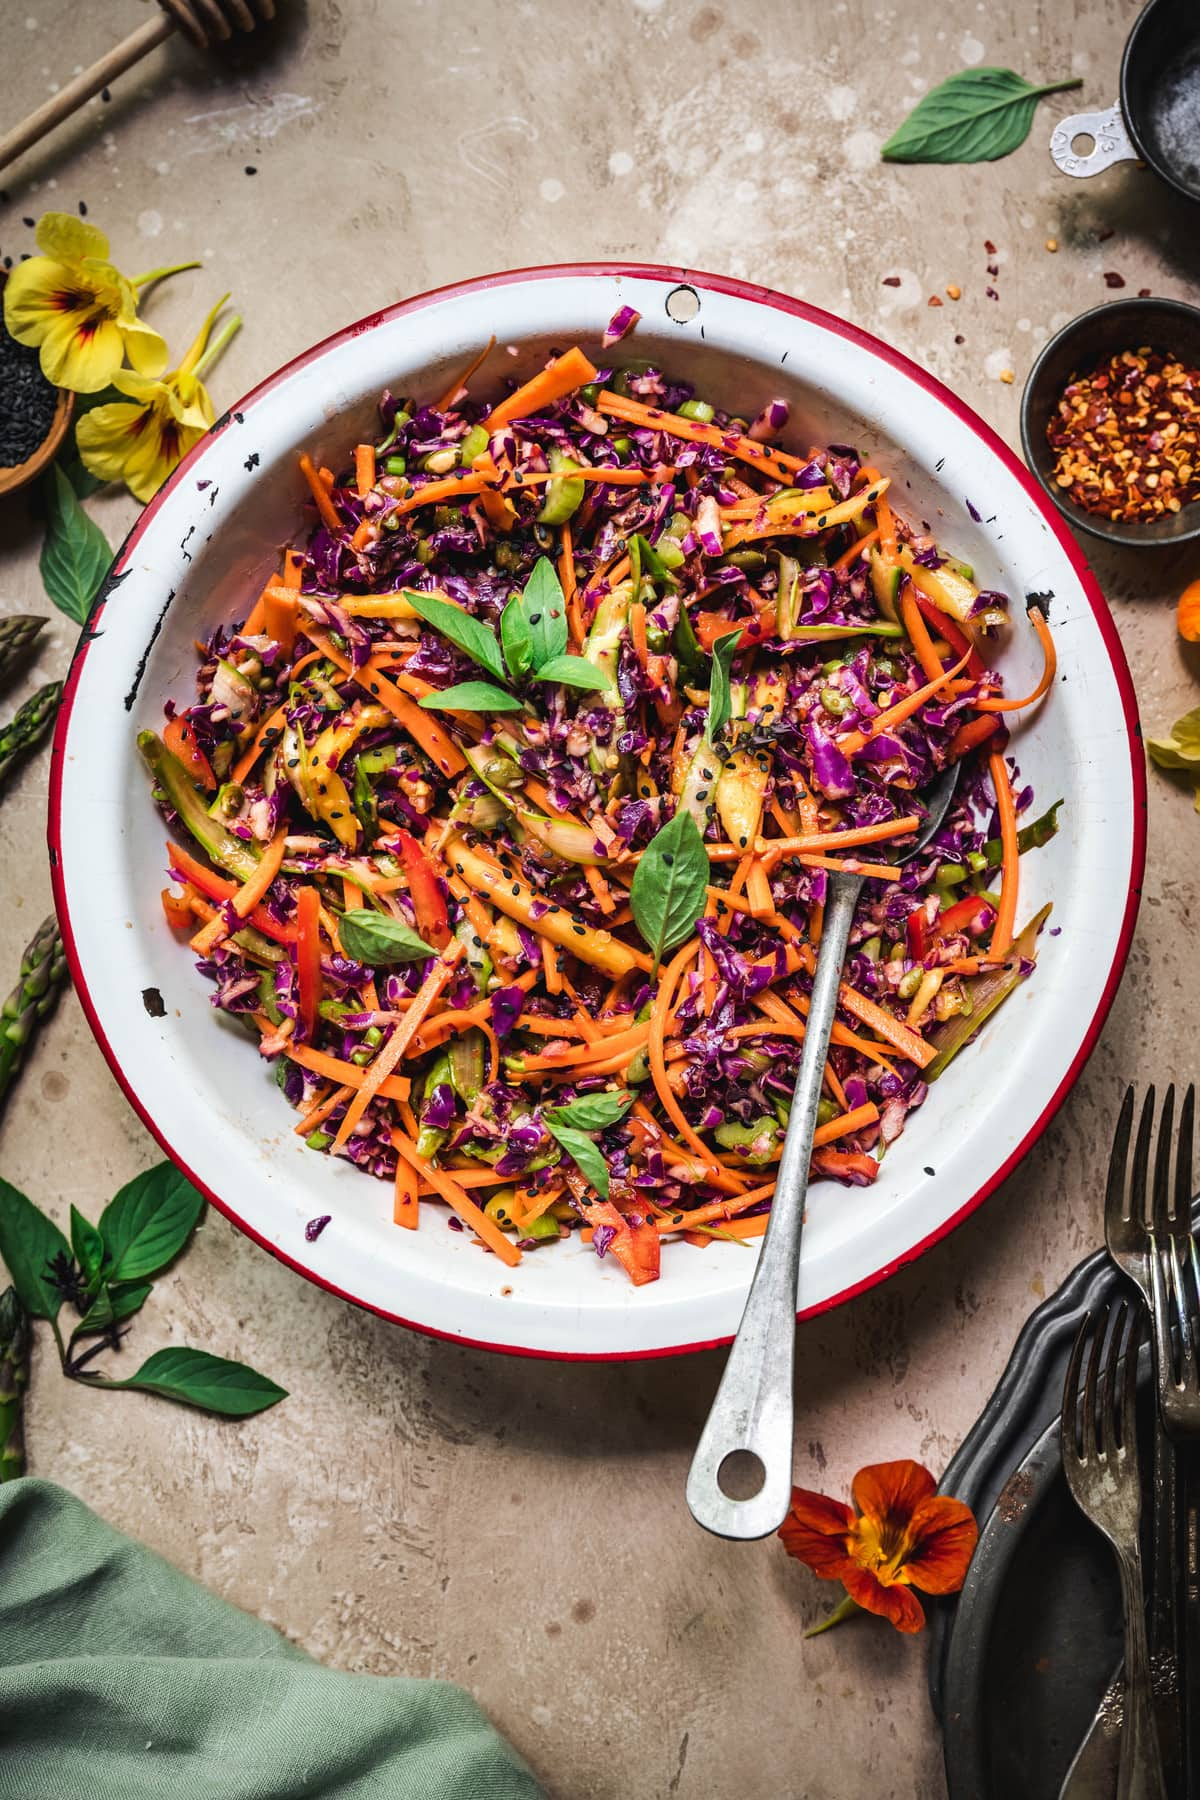 Overhead view of rainbow veggie slaw in a white bowl with antique spoon